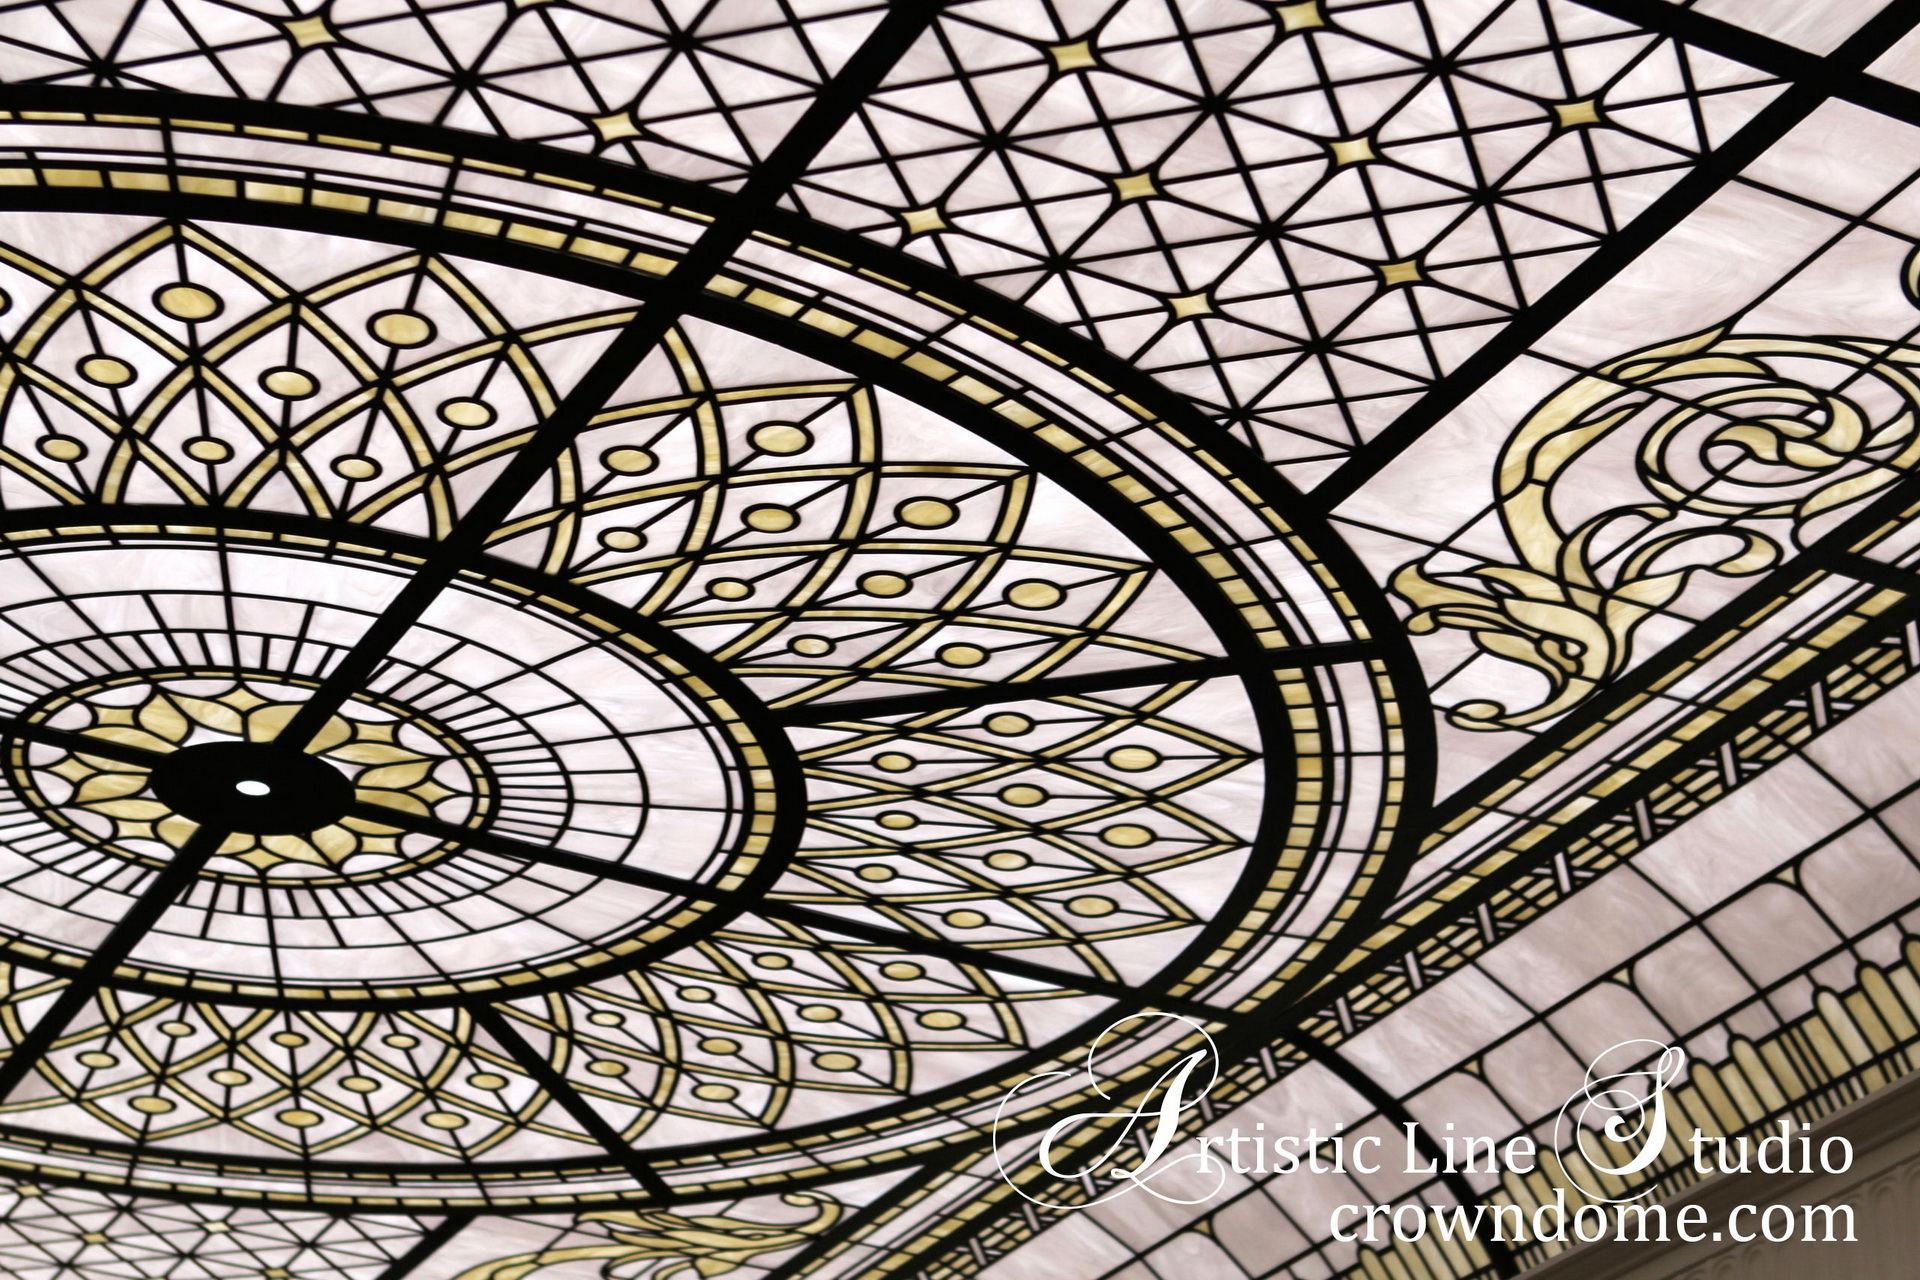 Stained glass skylight design. Stained glass ceiling elements, delicate elusive colors of white opal glasses, complex stained glass ceiling structure to support stained glass panels. Classical traditional style design, inspired by historical stained glass skylights and ceilings